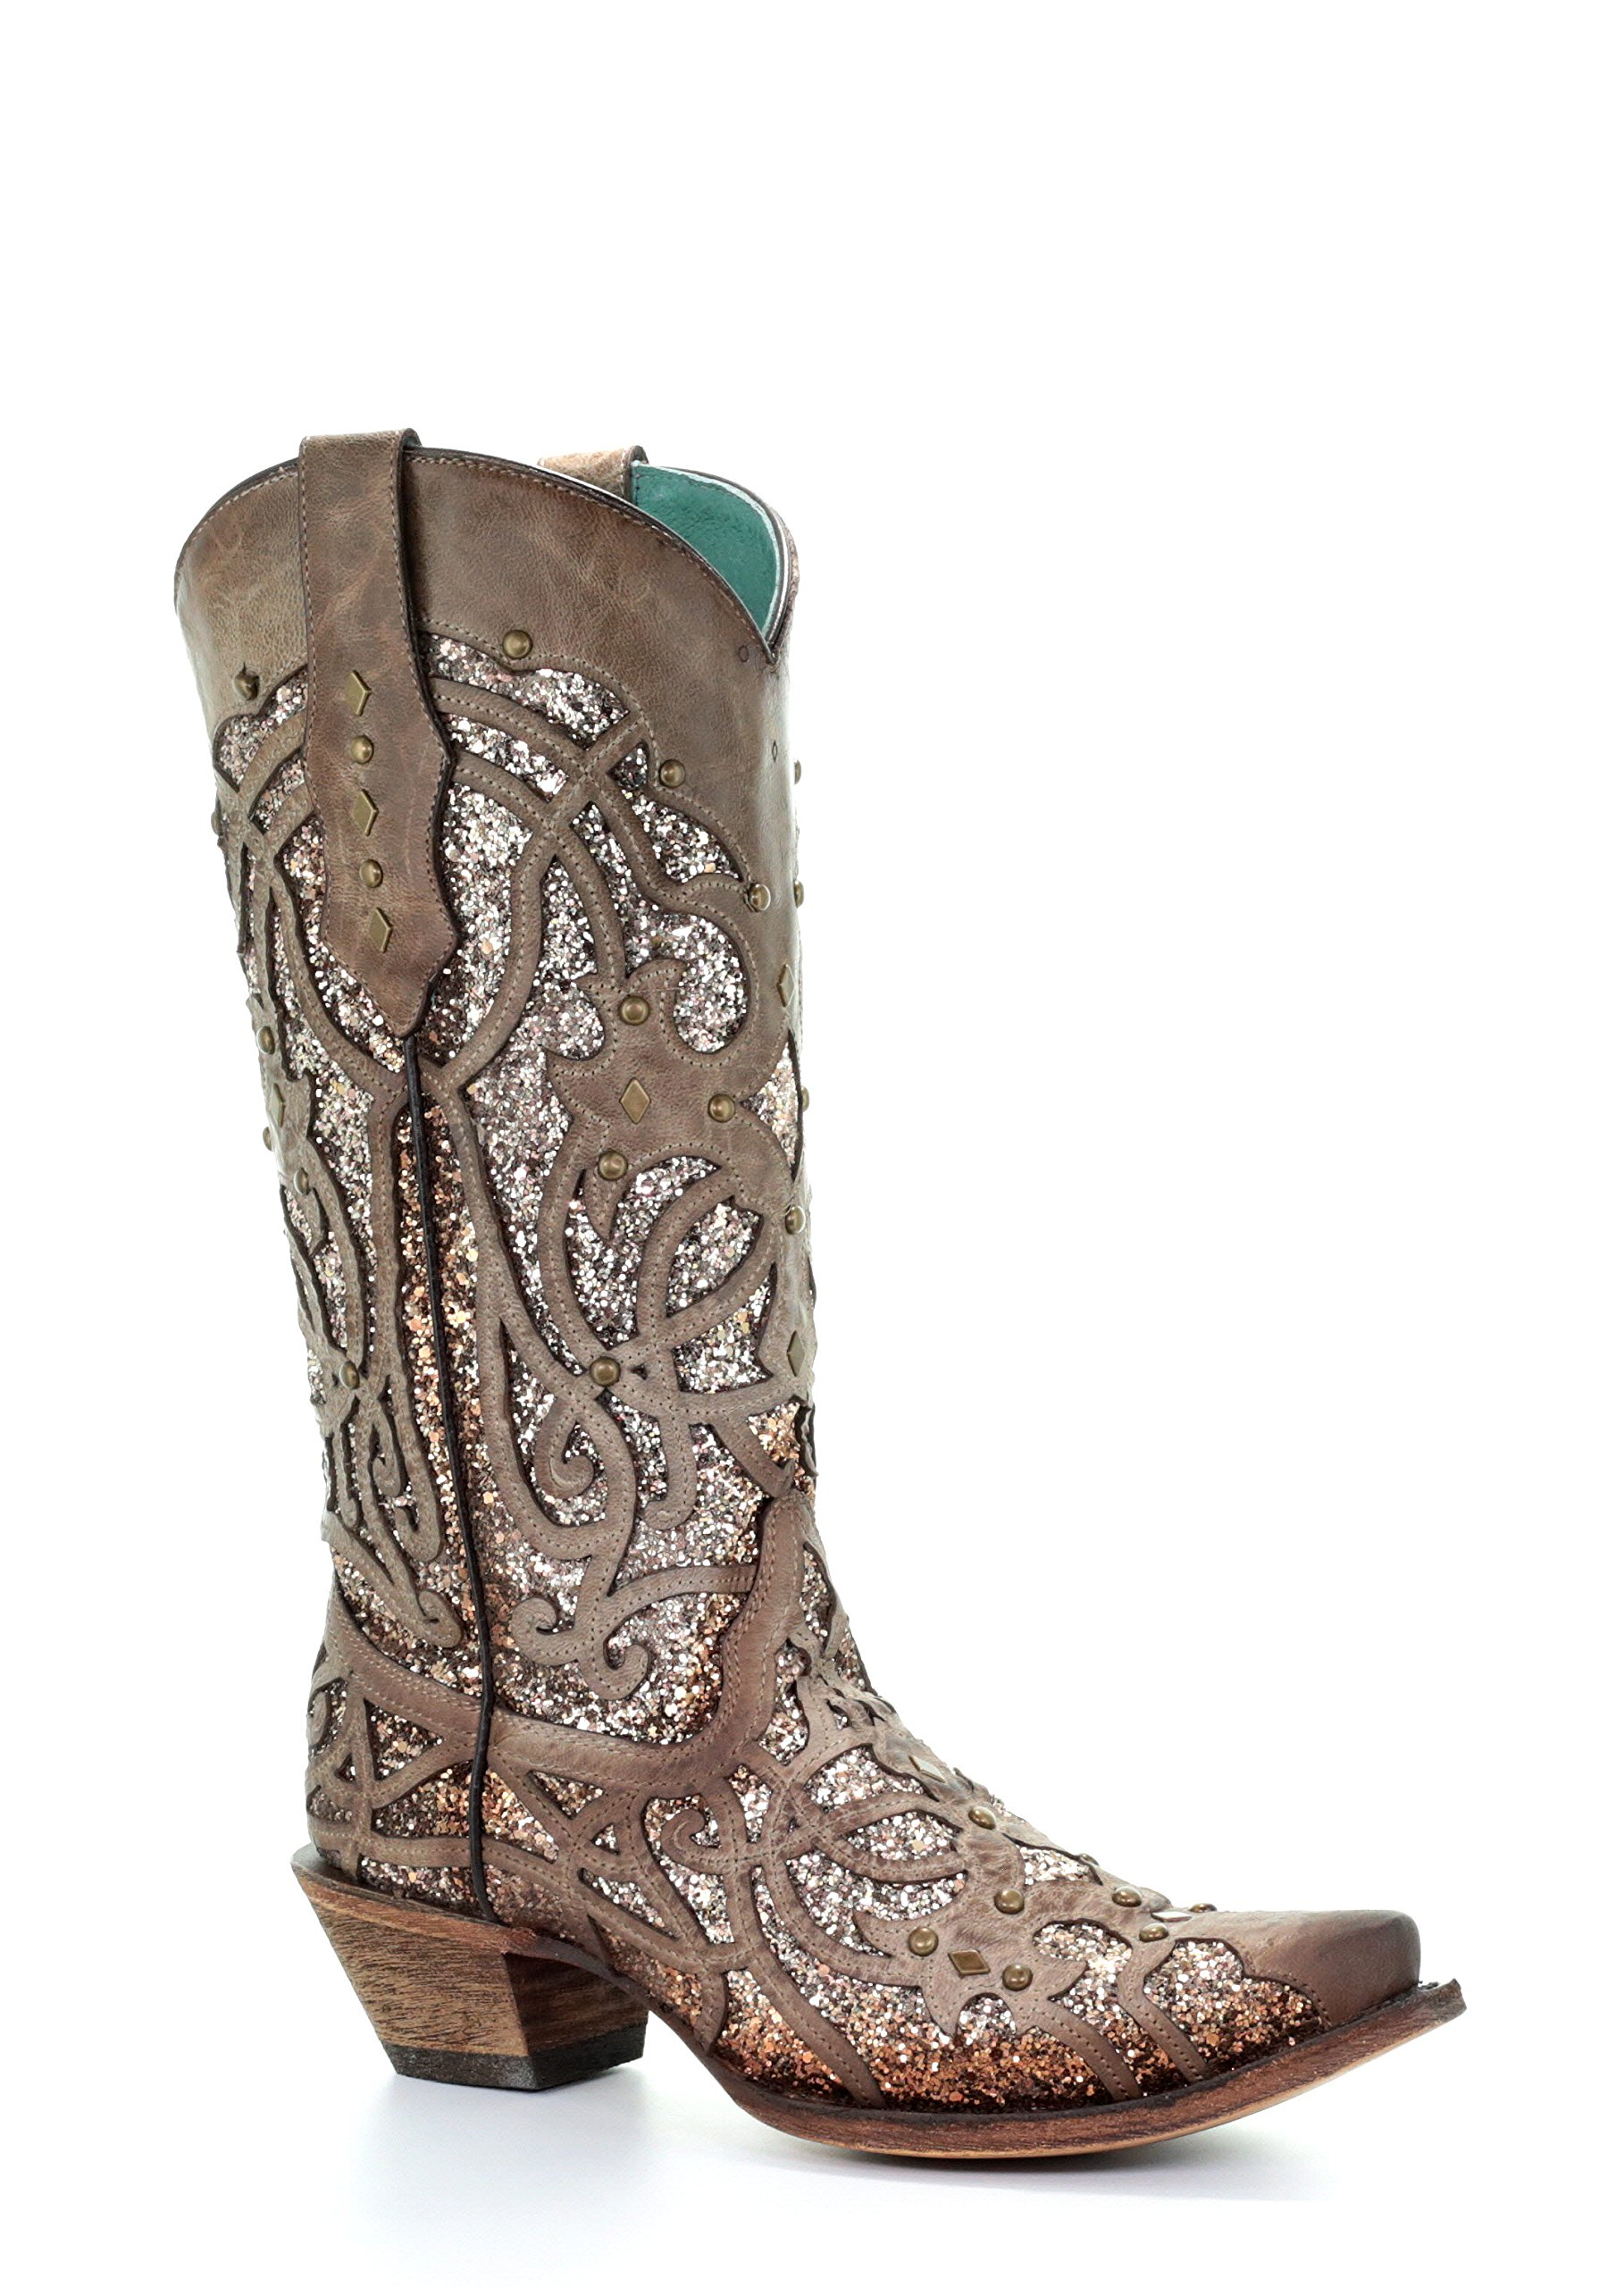 CORRAL Women's luminary Glitter Inlay Studs Snip Toe Leather Cowgirl Boots - Orix